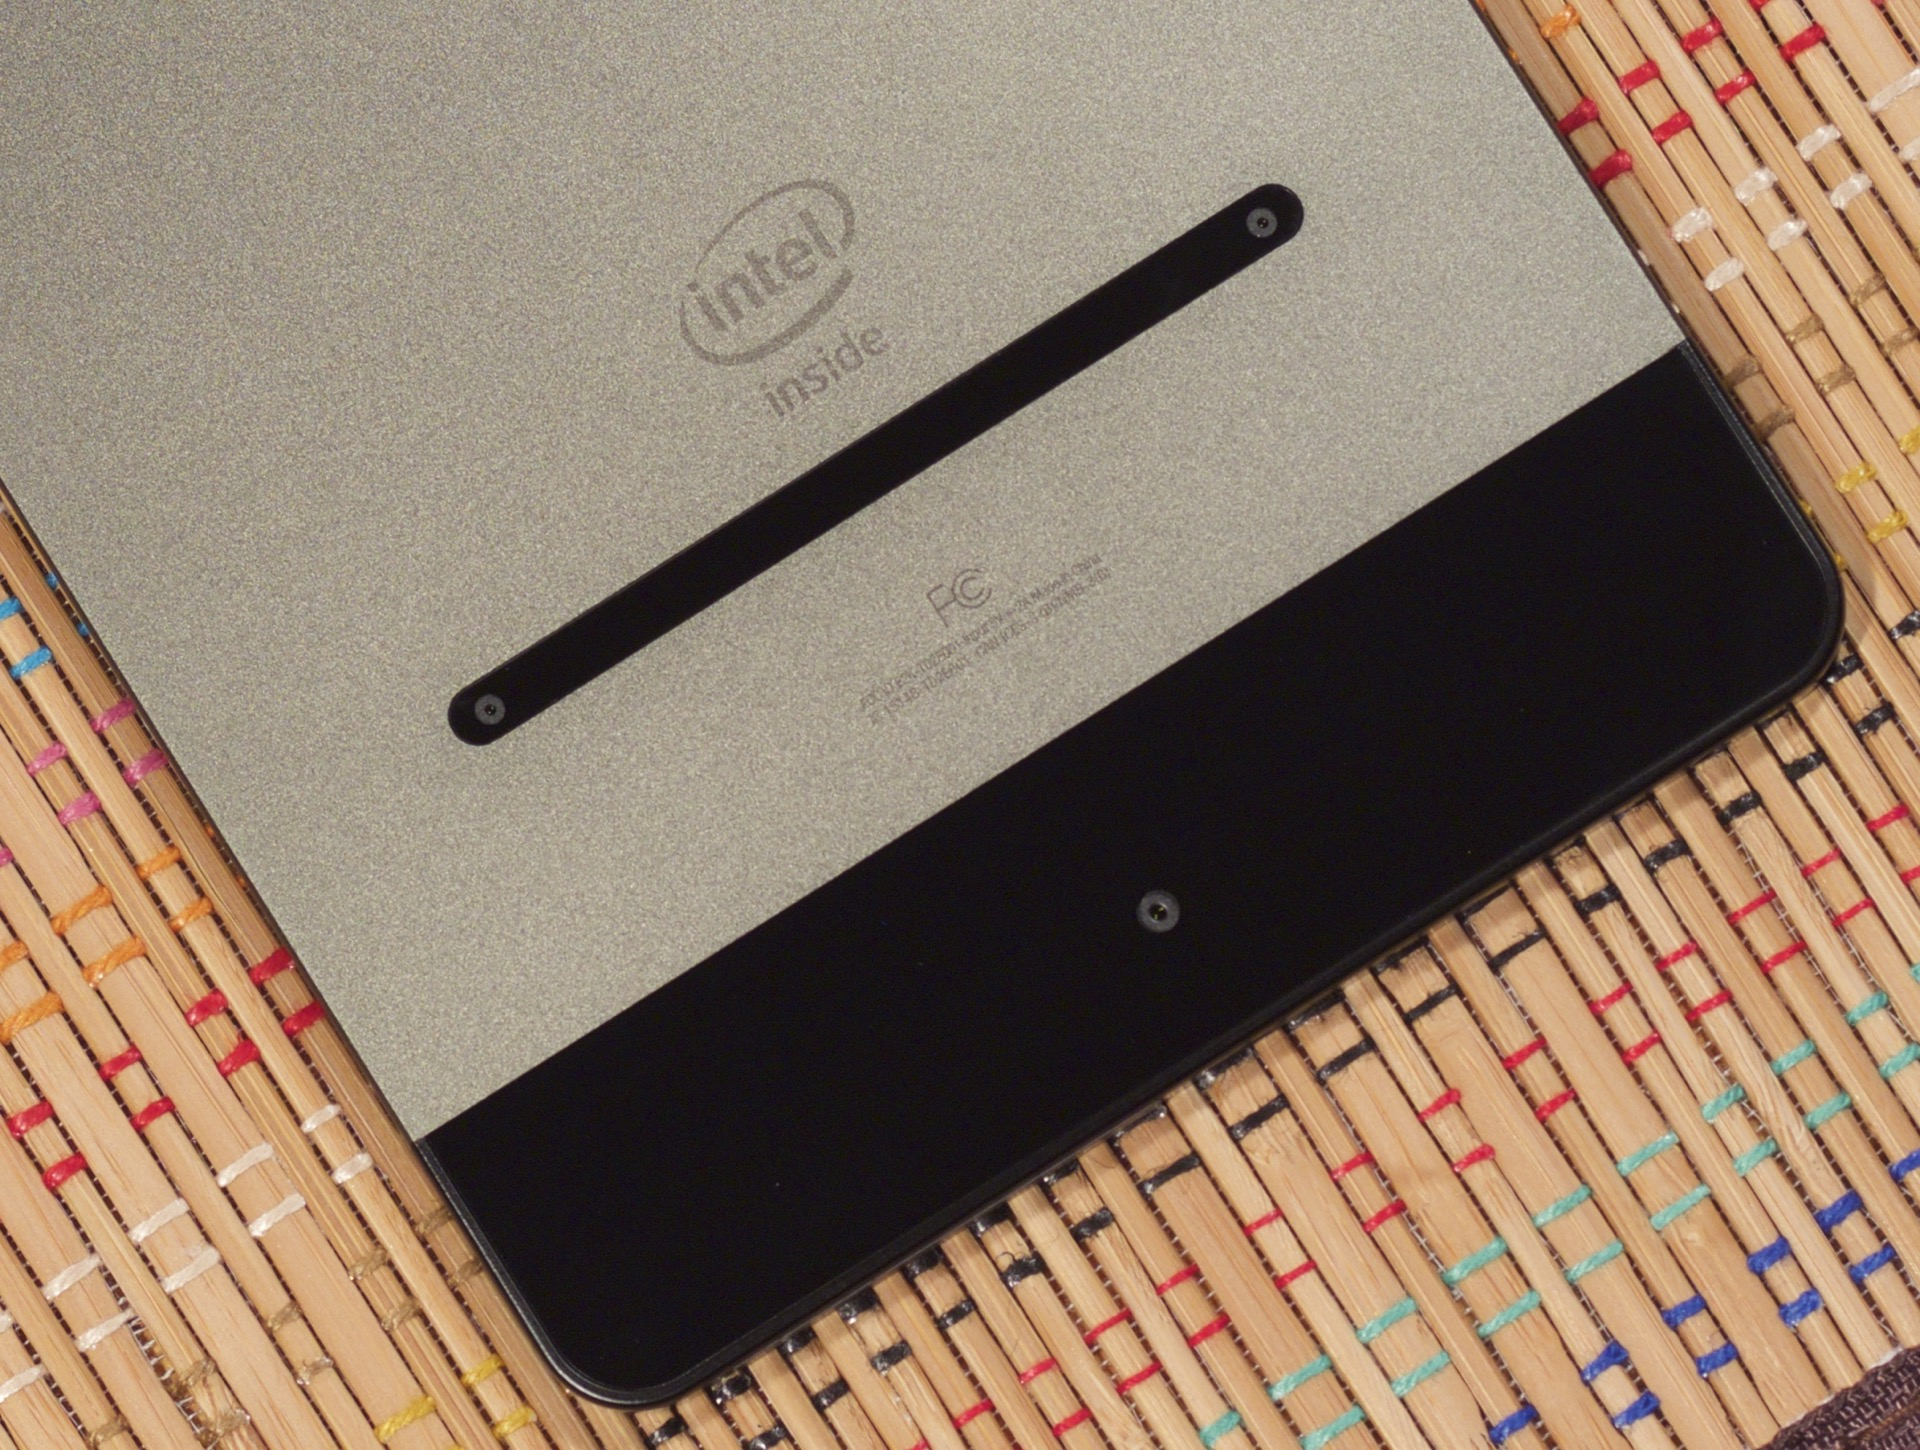 The main camera is centered on the bottom. The RealSense cameras are in the little black strip below the Intel logo.